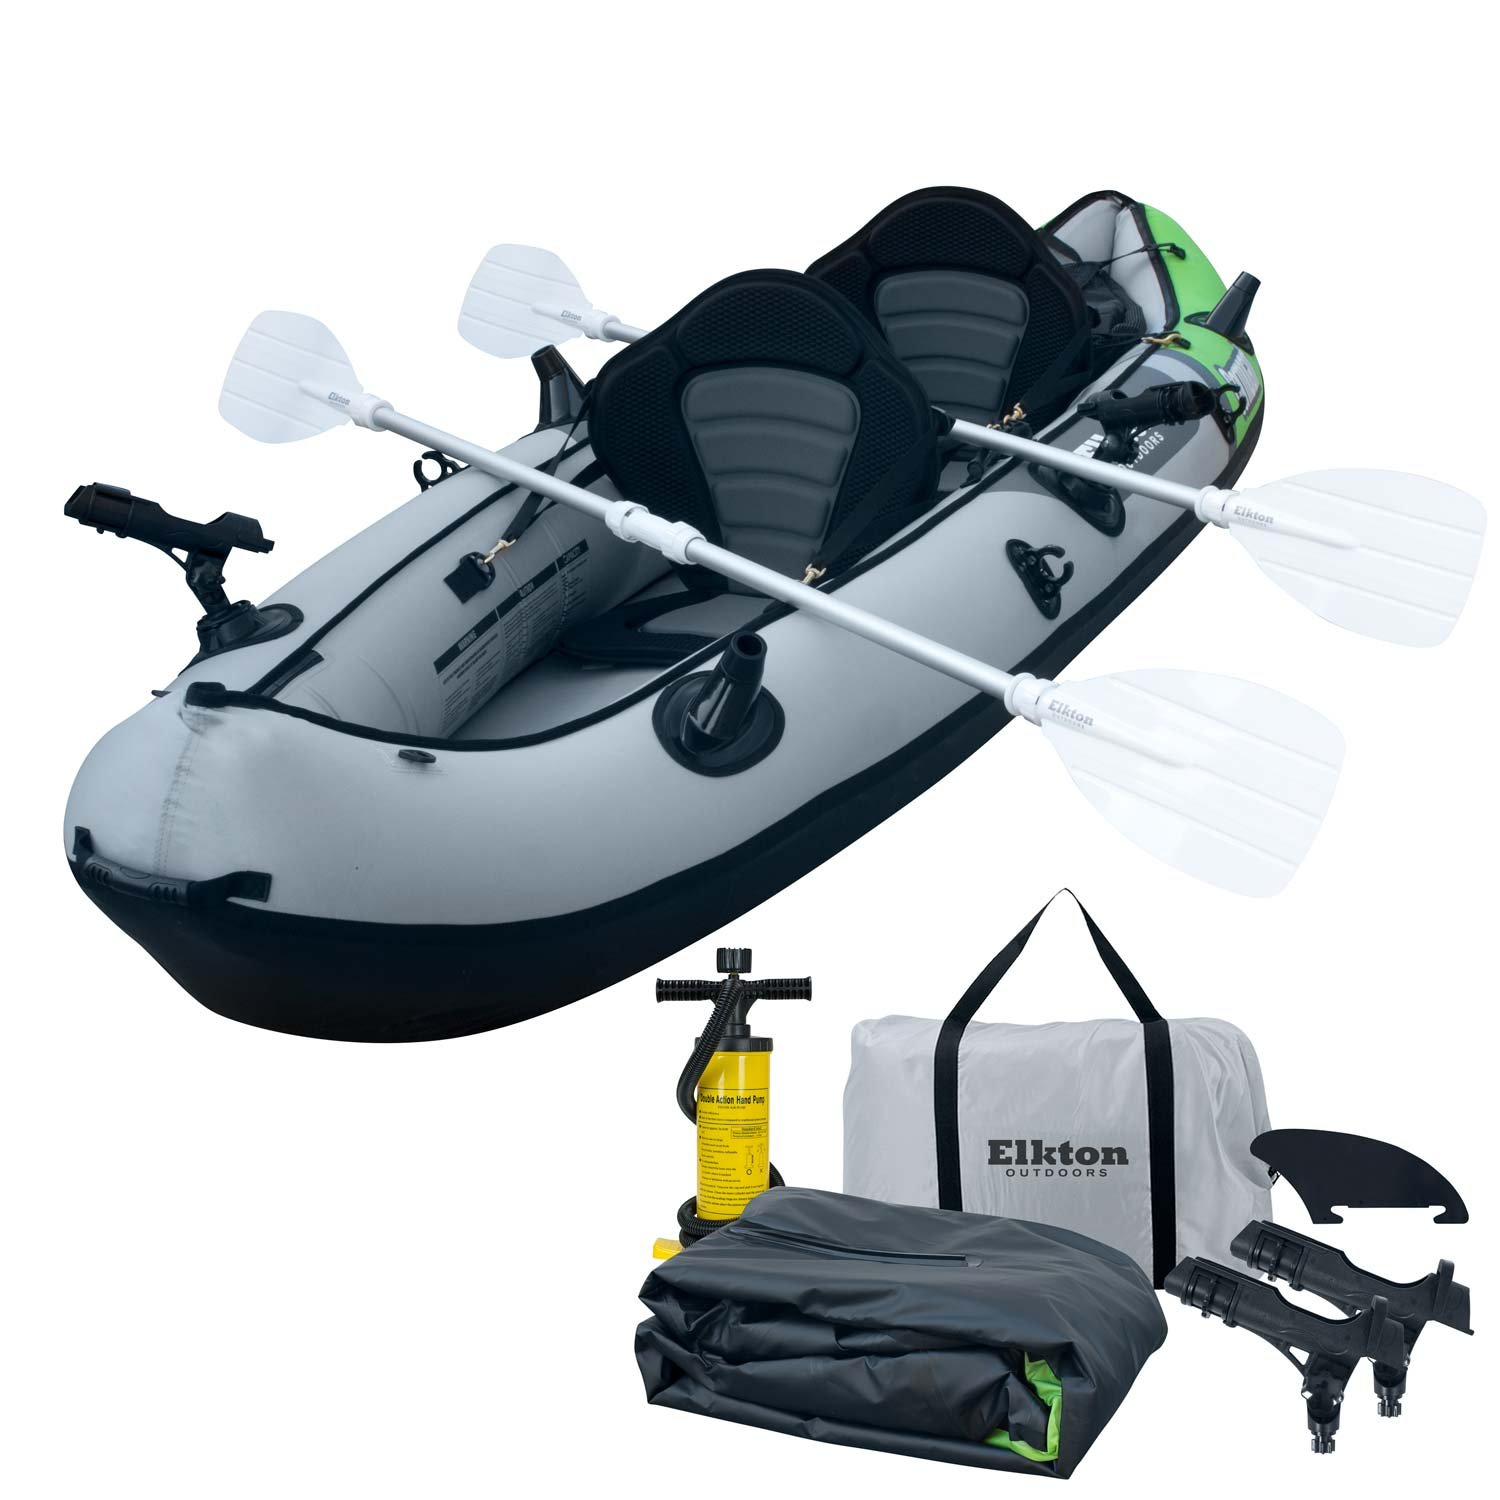 Elkton Outdoors Cormorant 2 Person Tandem Inflatable Fishing Kayak 10 Foot With Eva Padded Seats Includes 2 Active Fishing Rod Holder Mounts 2 Aluminum Paddles Double Action Pump And More Buy Online